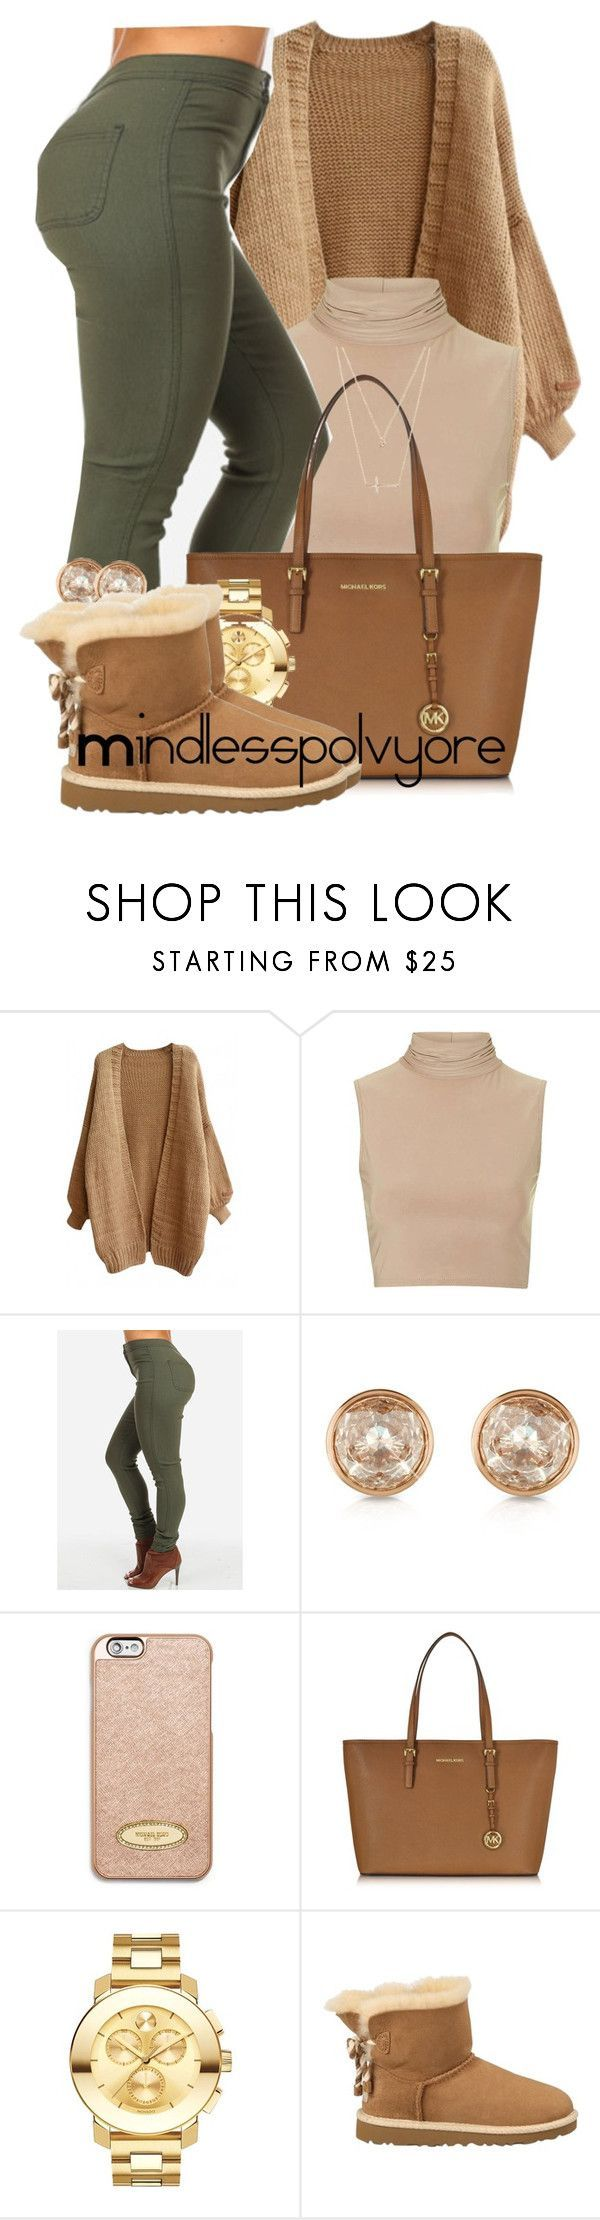 """""""How could you ever cut me loose? na na na"""" by mindlesspolyvore ❤ liked on Polyvore featuring Rare London, Michael Kors, MICHAEL Michael Kors, Movado, UGG Australia and Forever 21"""